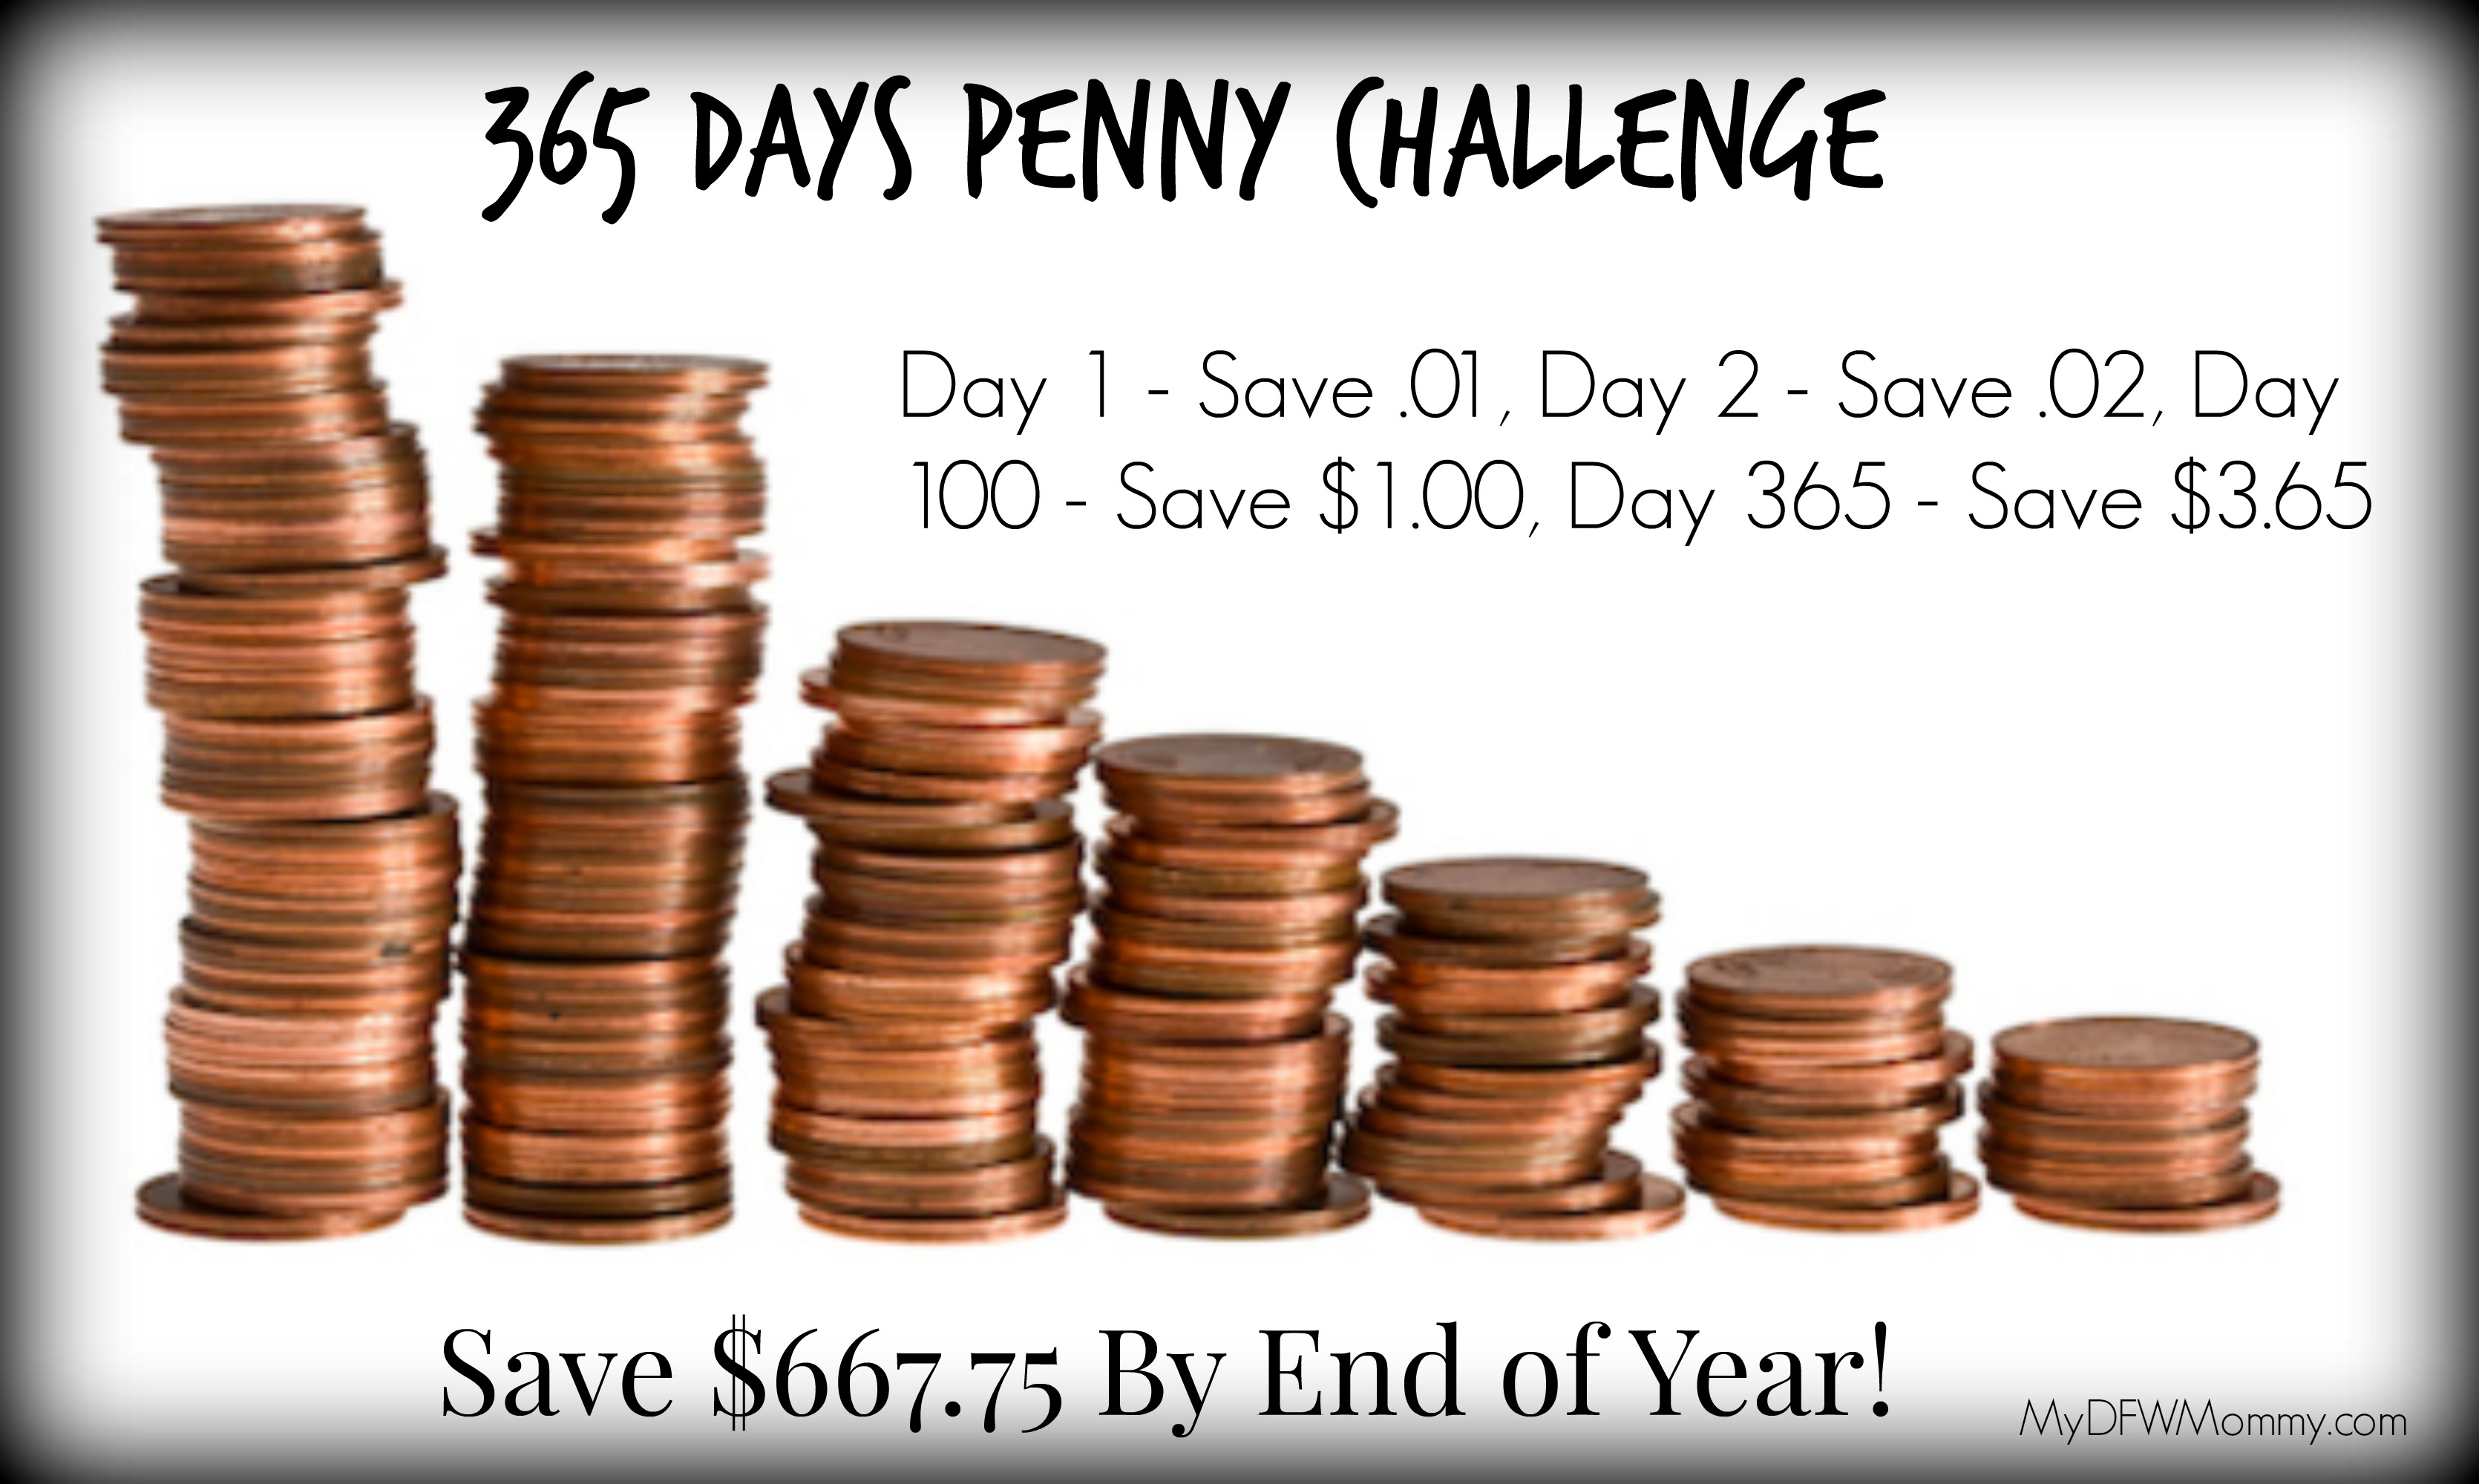 365 Days Penny Challenge